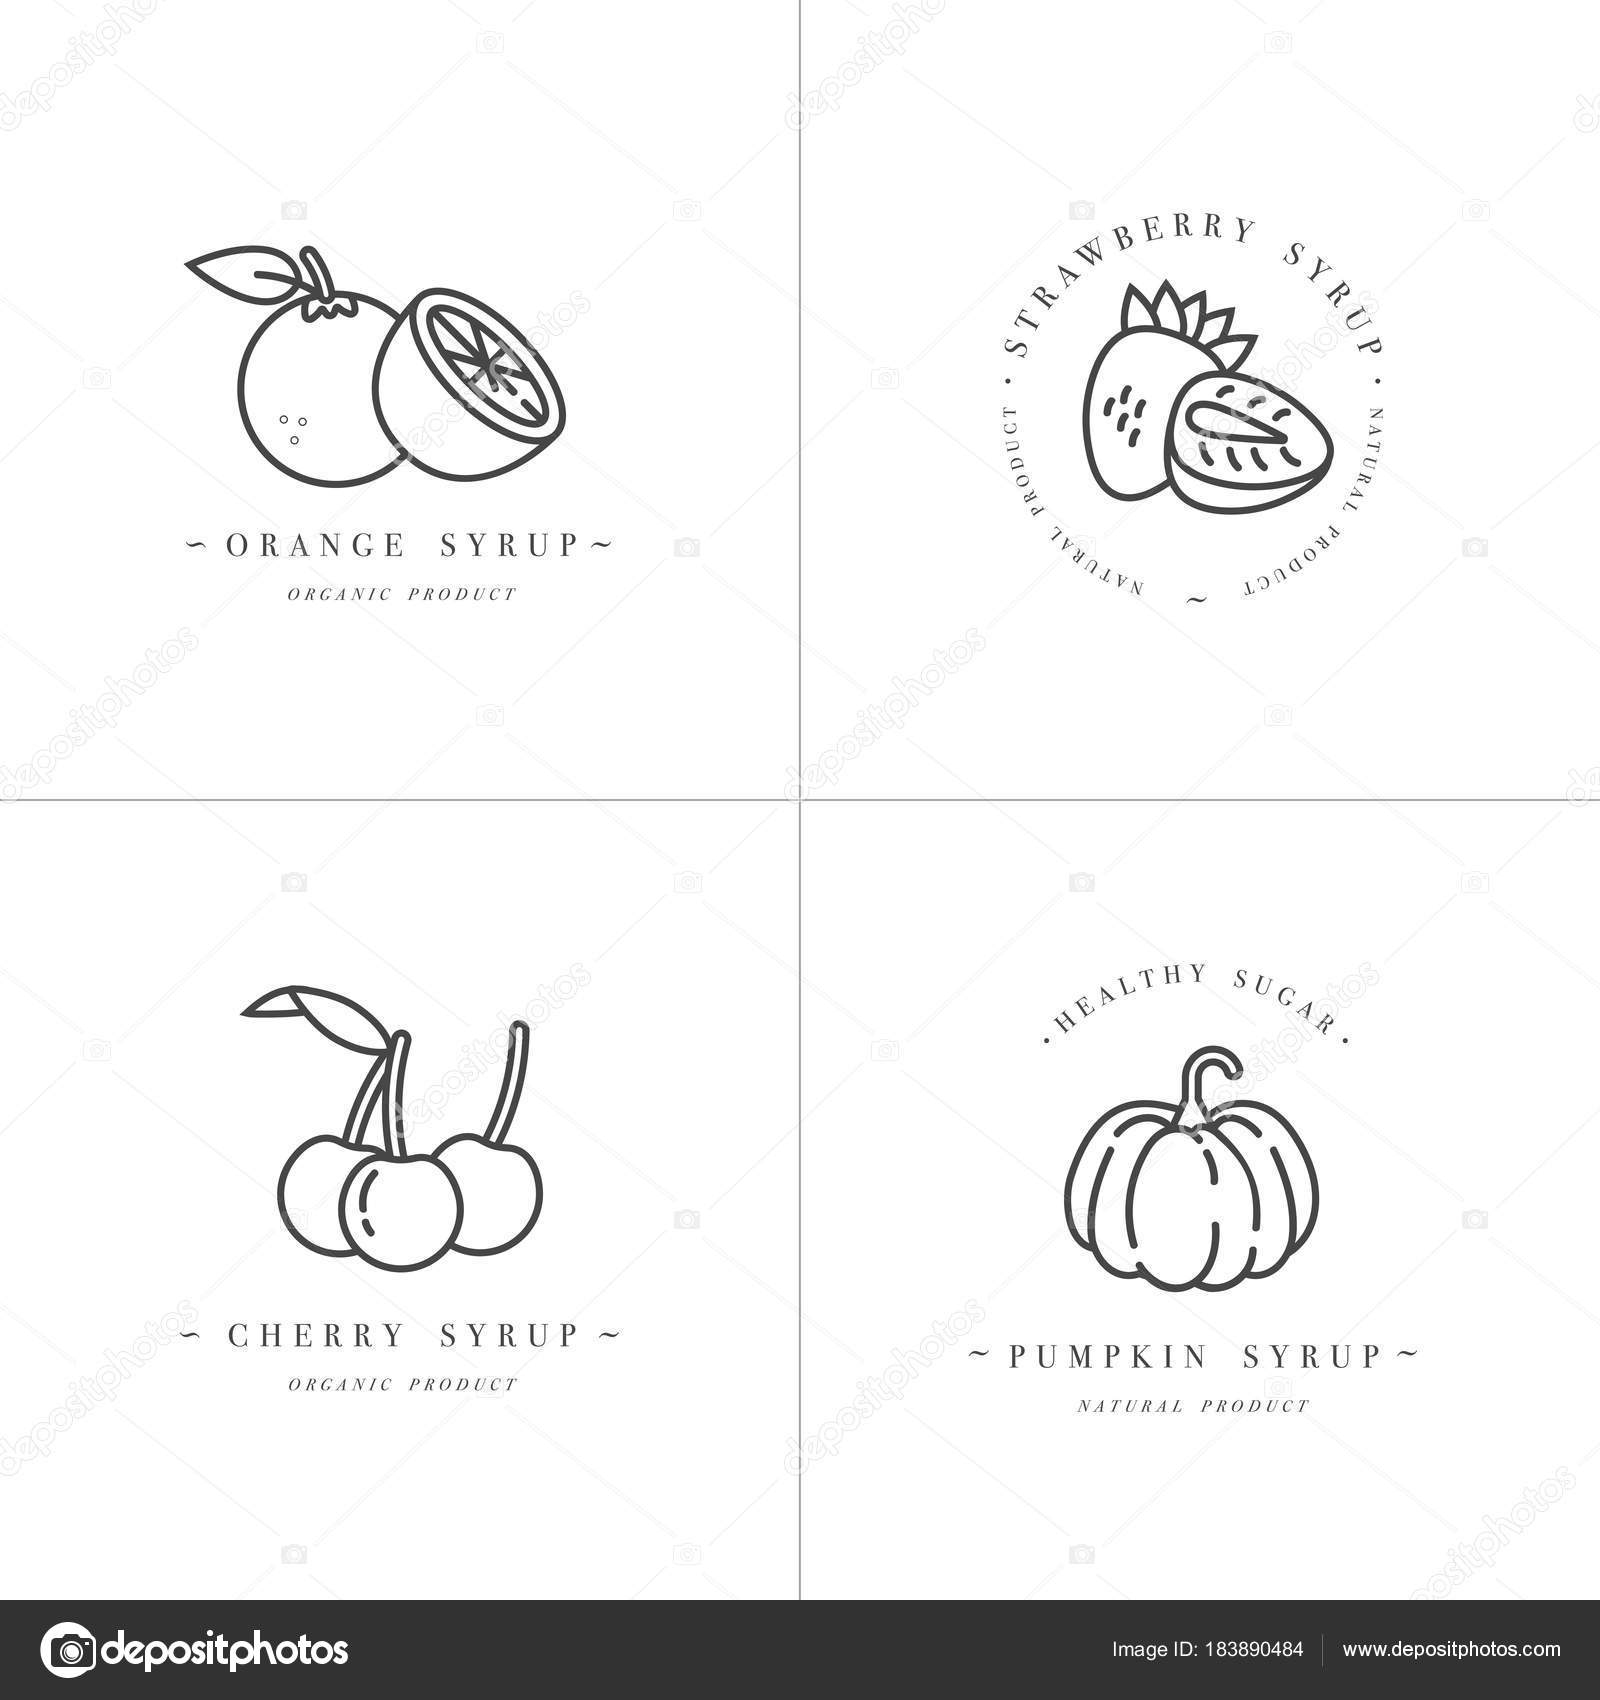 vector set design monochrome templates logo and emblems syrups and